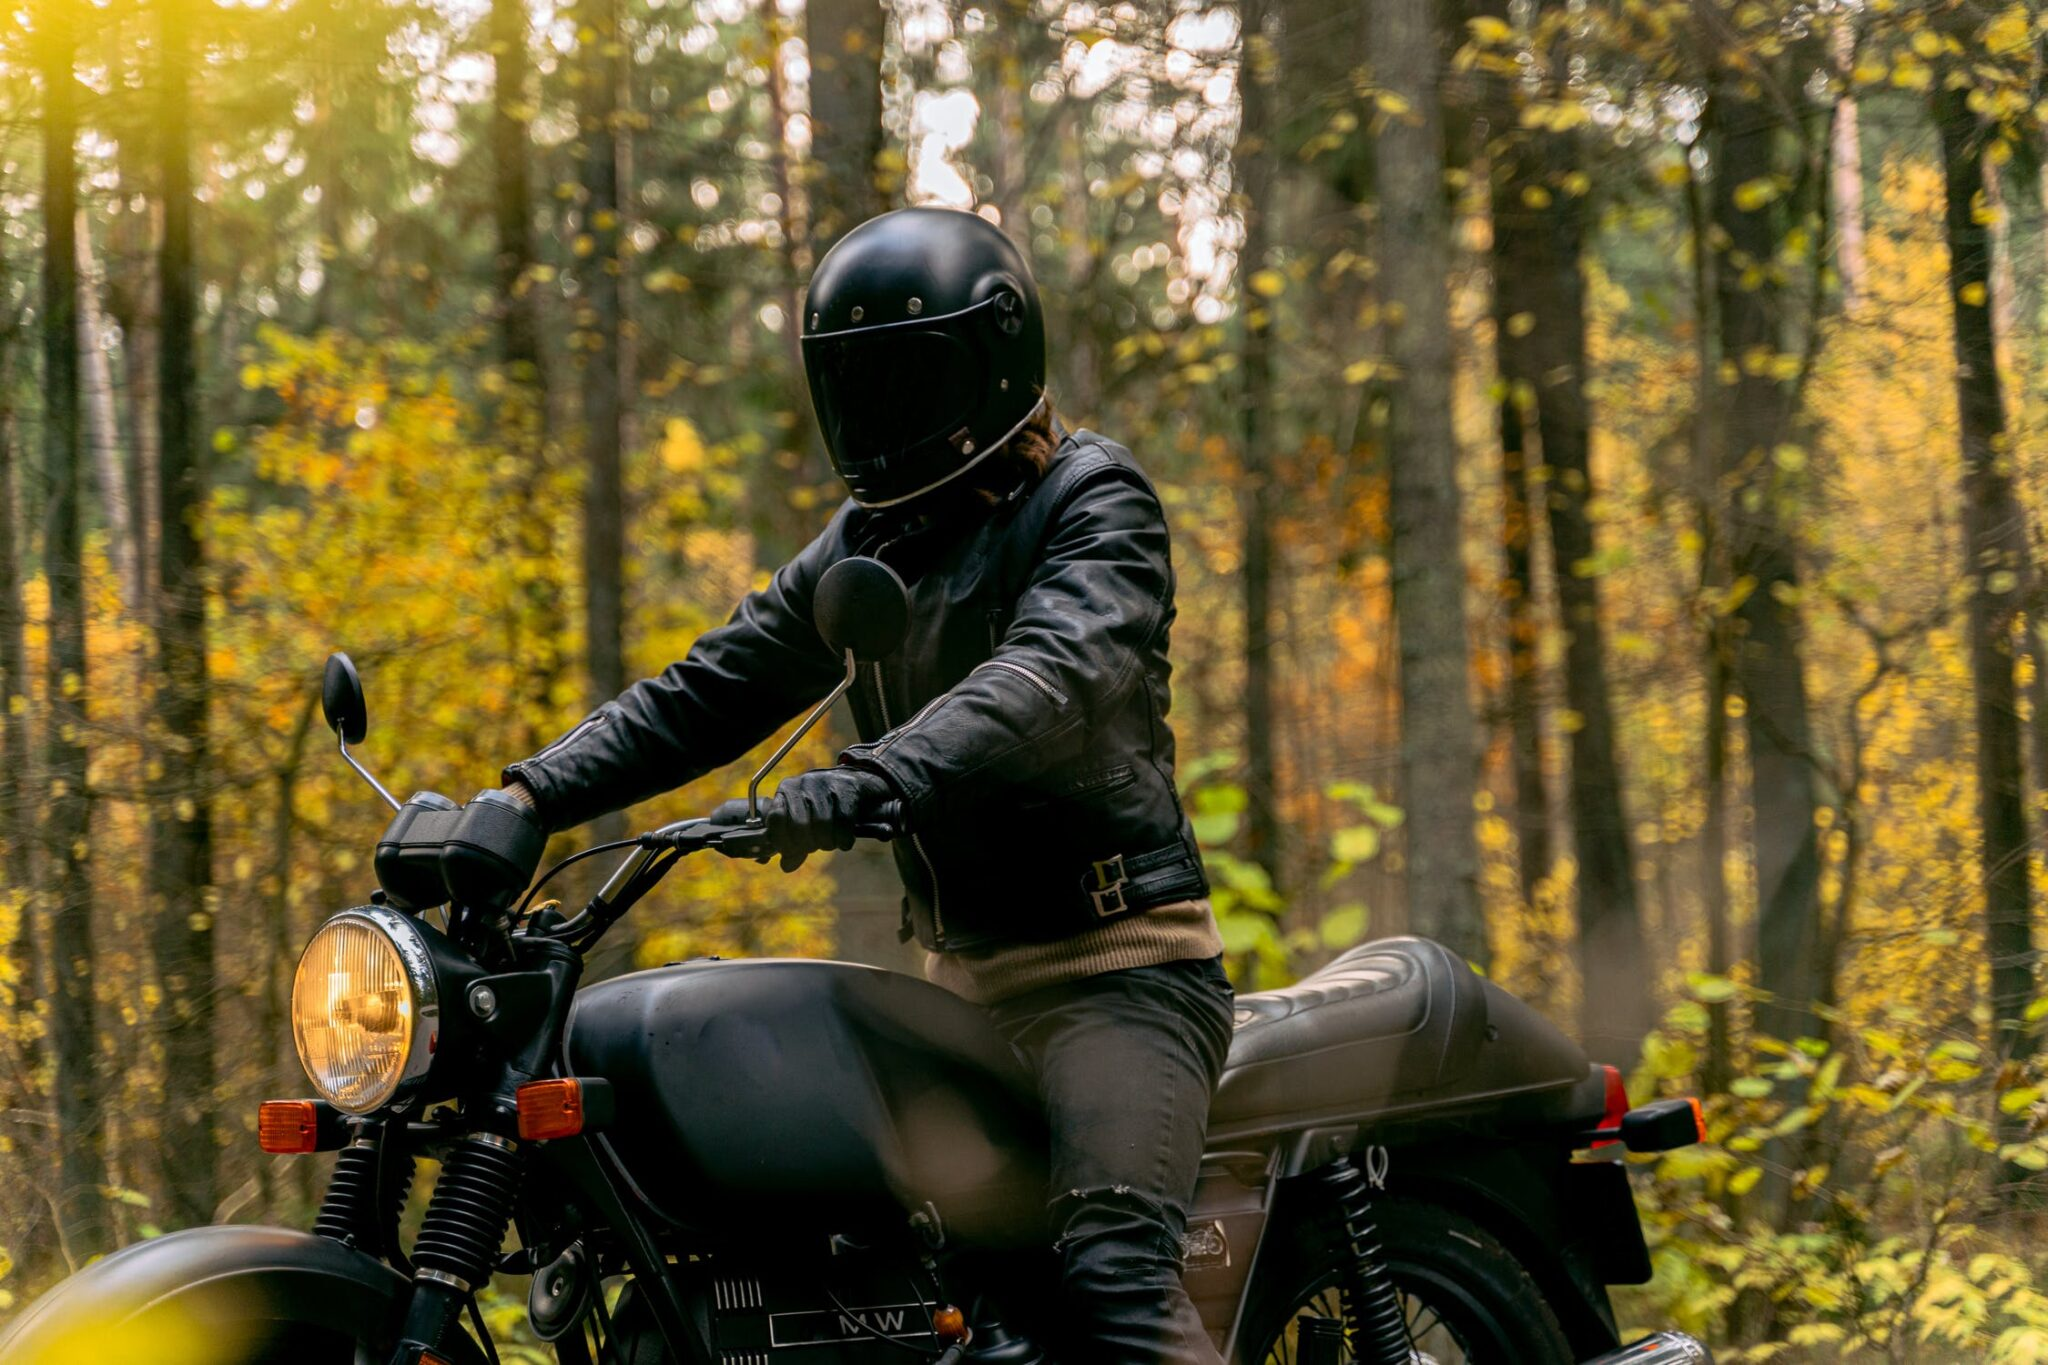 Rider on motorcycle in forest